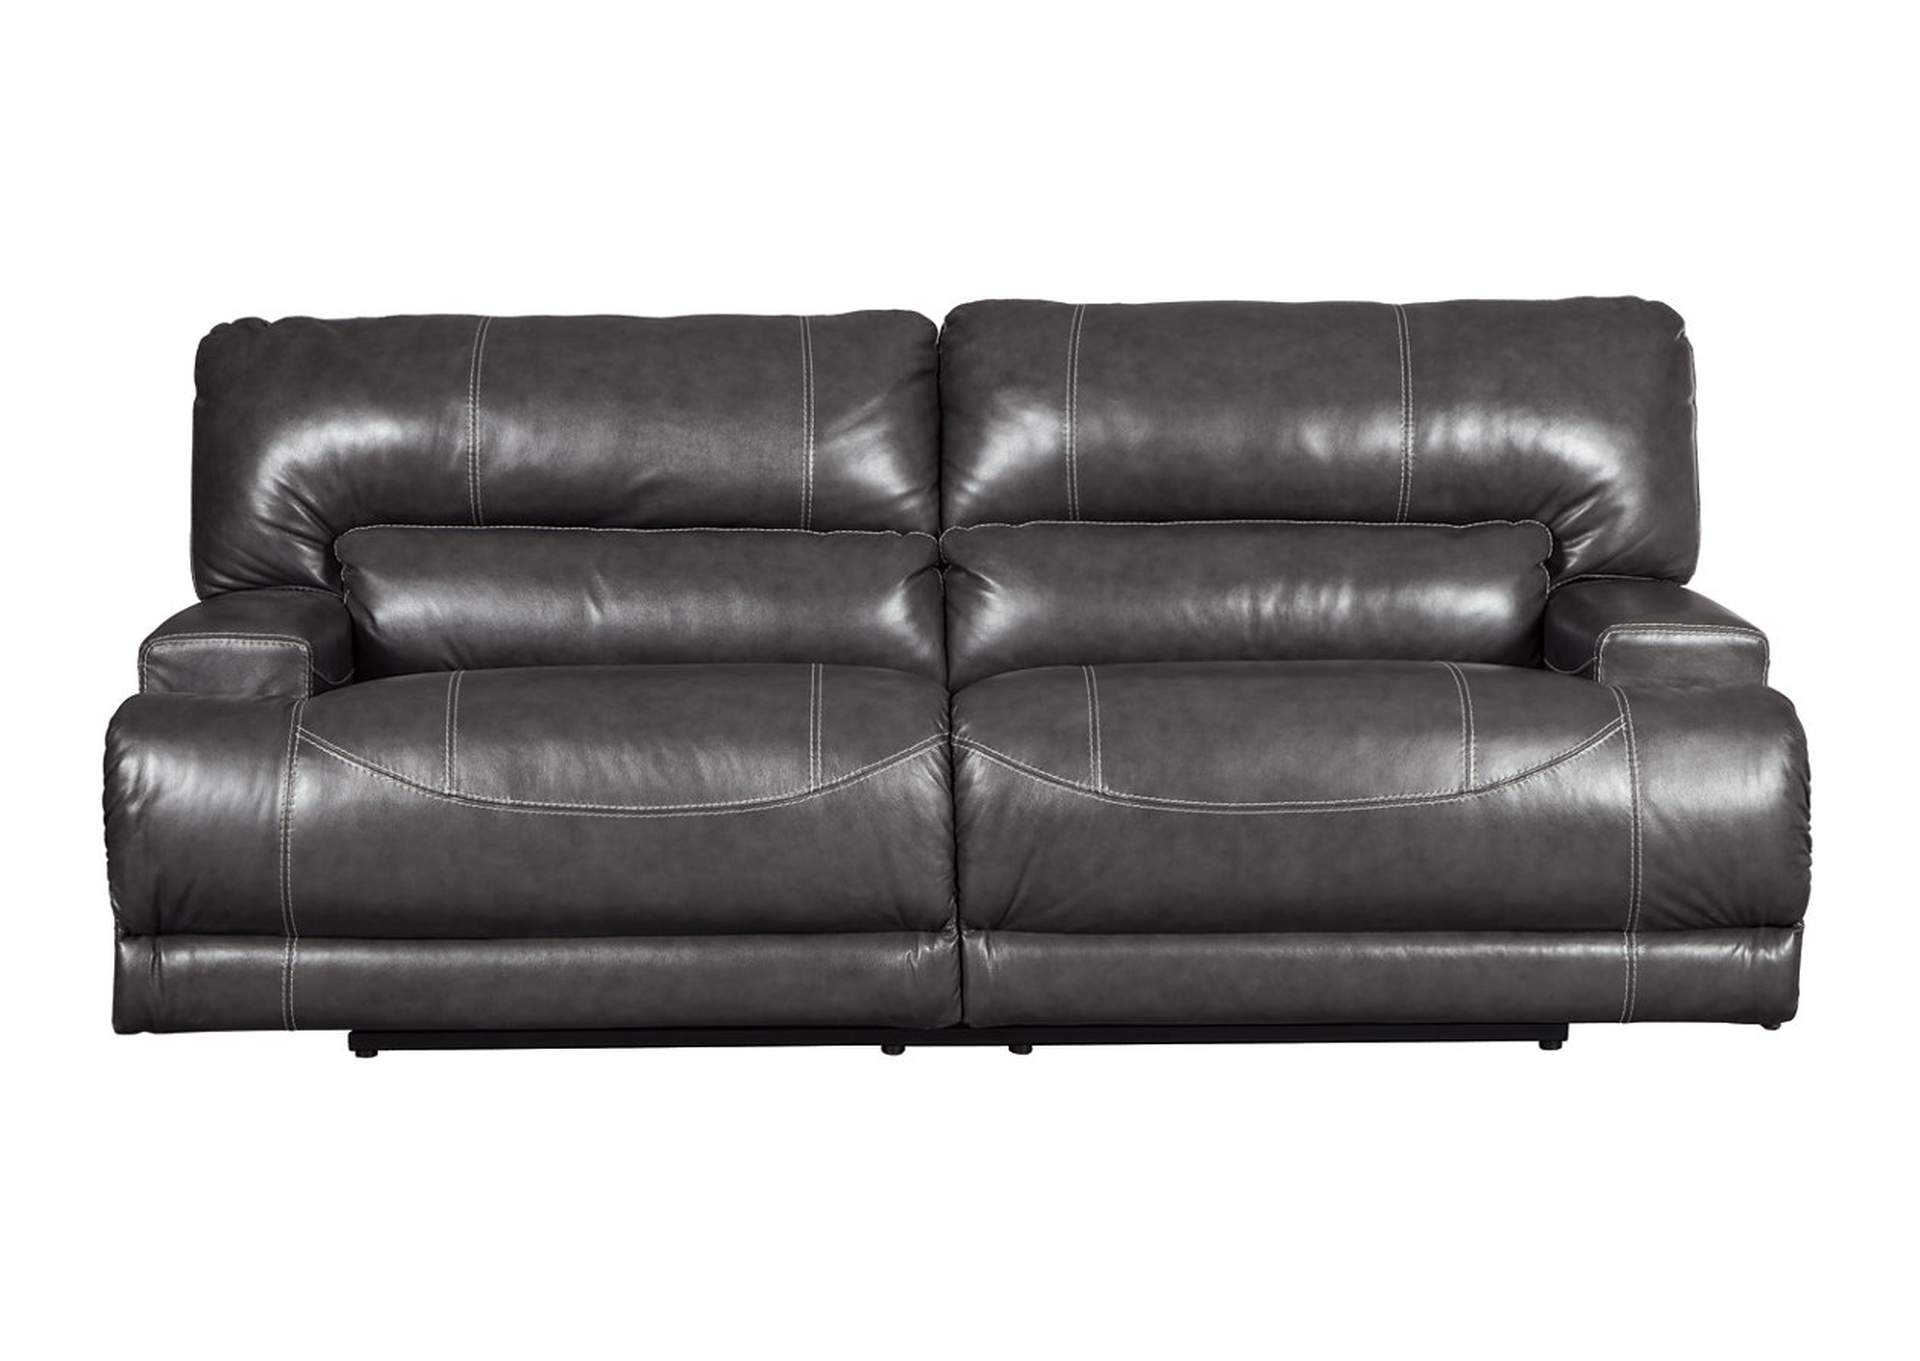 Furniture Discount Warehouse Mccaskill Gray 2 Seat Power Reclining Sofa